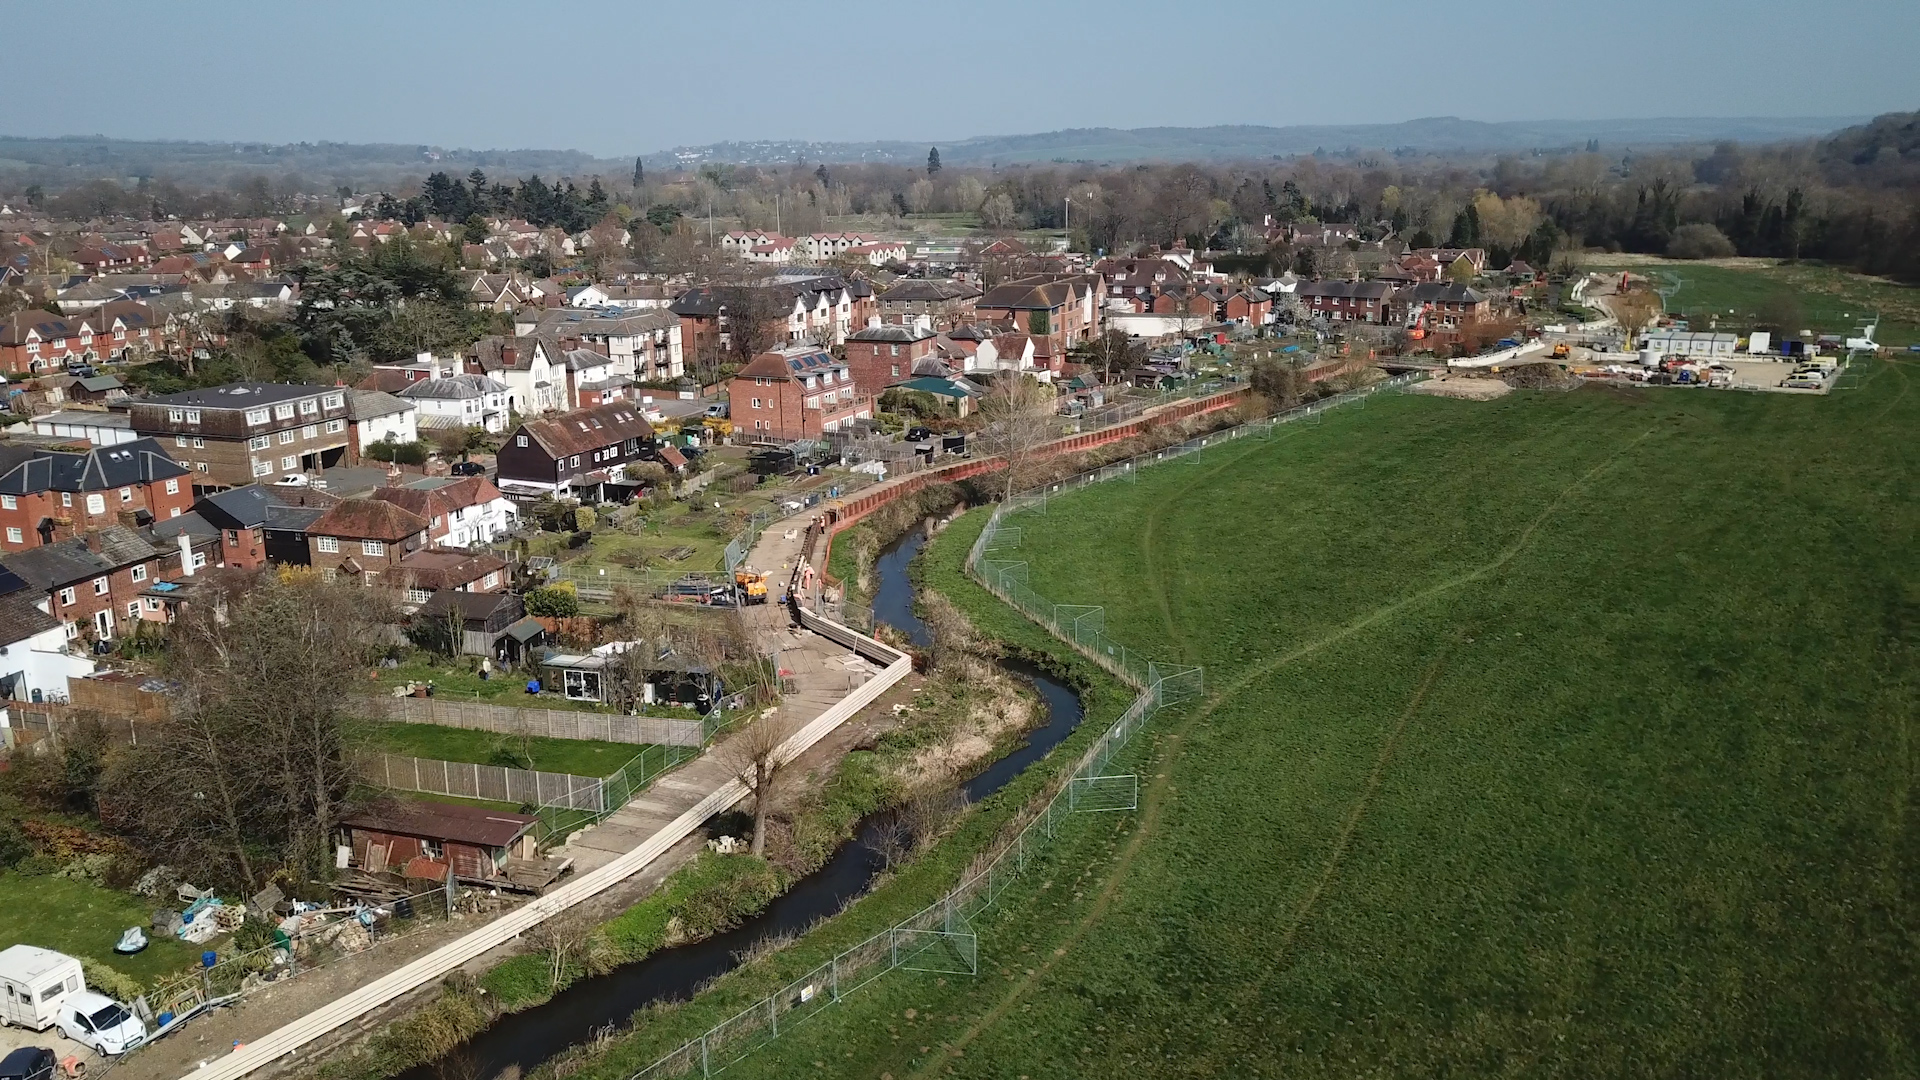 Aerial view of Godalming Flood Alleviation Defences under construction